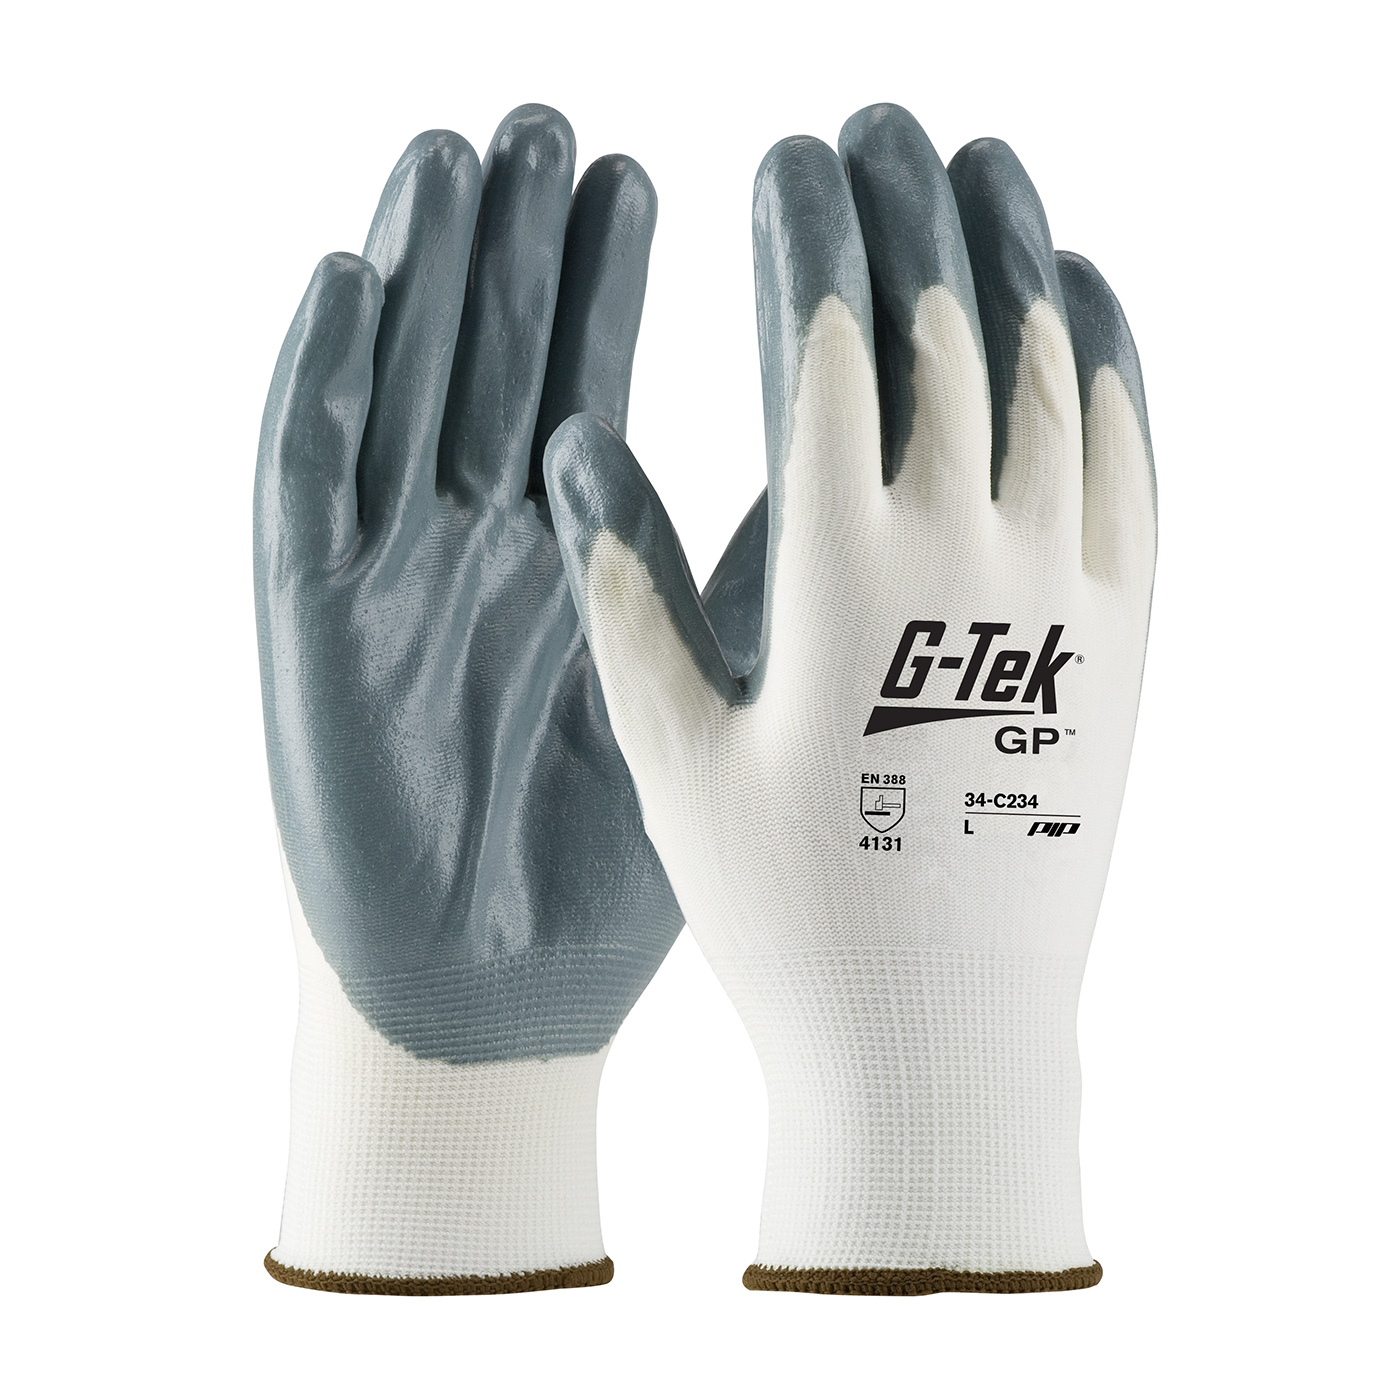 #34-C232 PIP® G-Tek® GP™ Seamless Knit Nylon Glove with Nitrile Coated Foam Grip on Palm & Fingers - Economy Grade